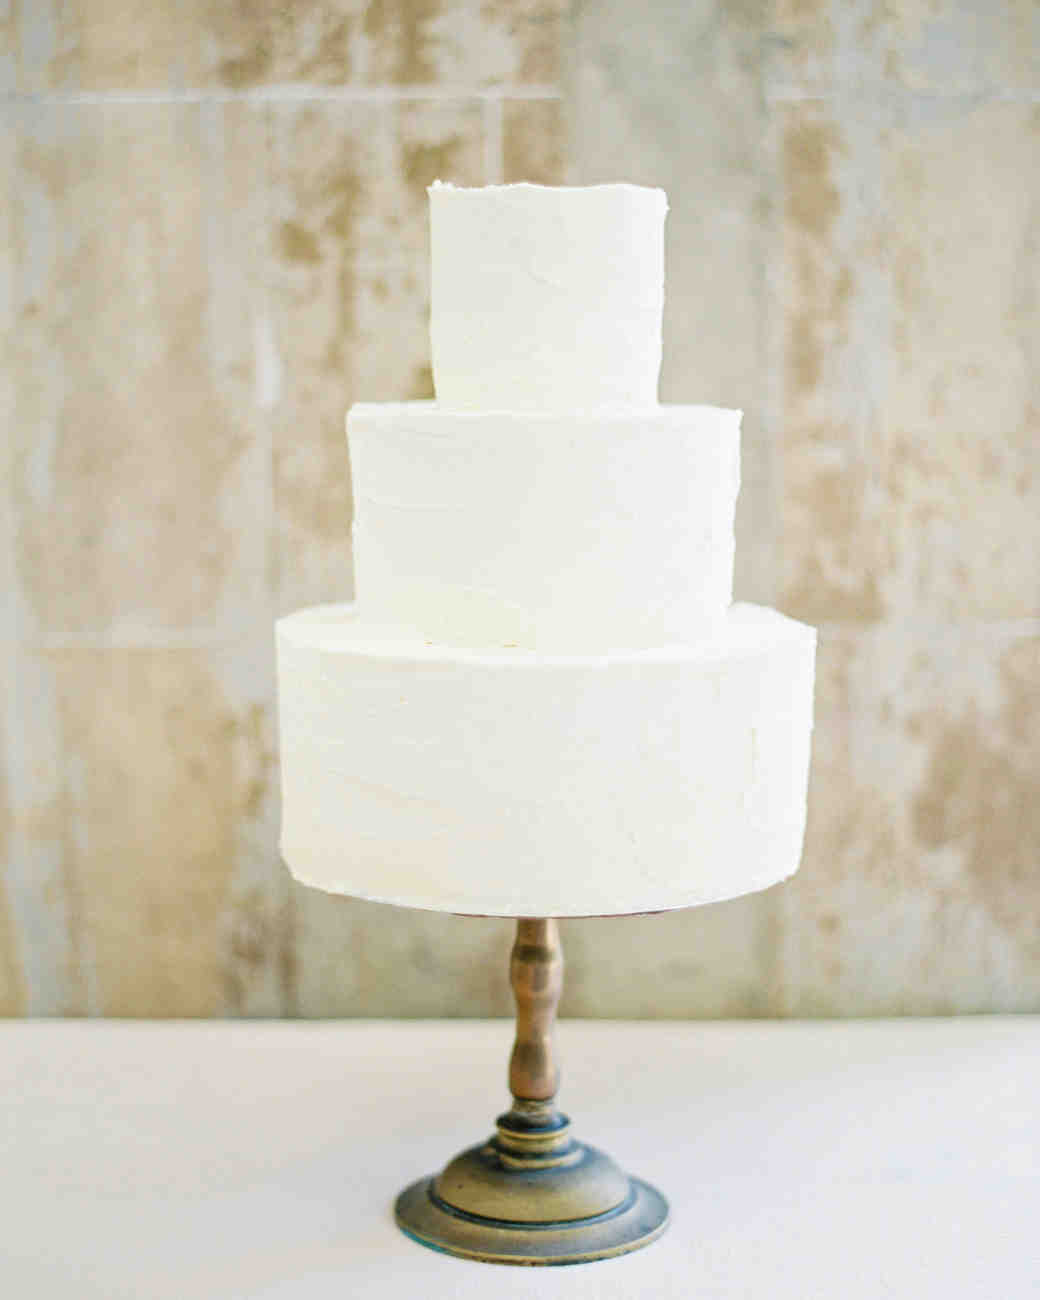 Three-Tiered White Wedding Cake with Deckle Edges